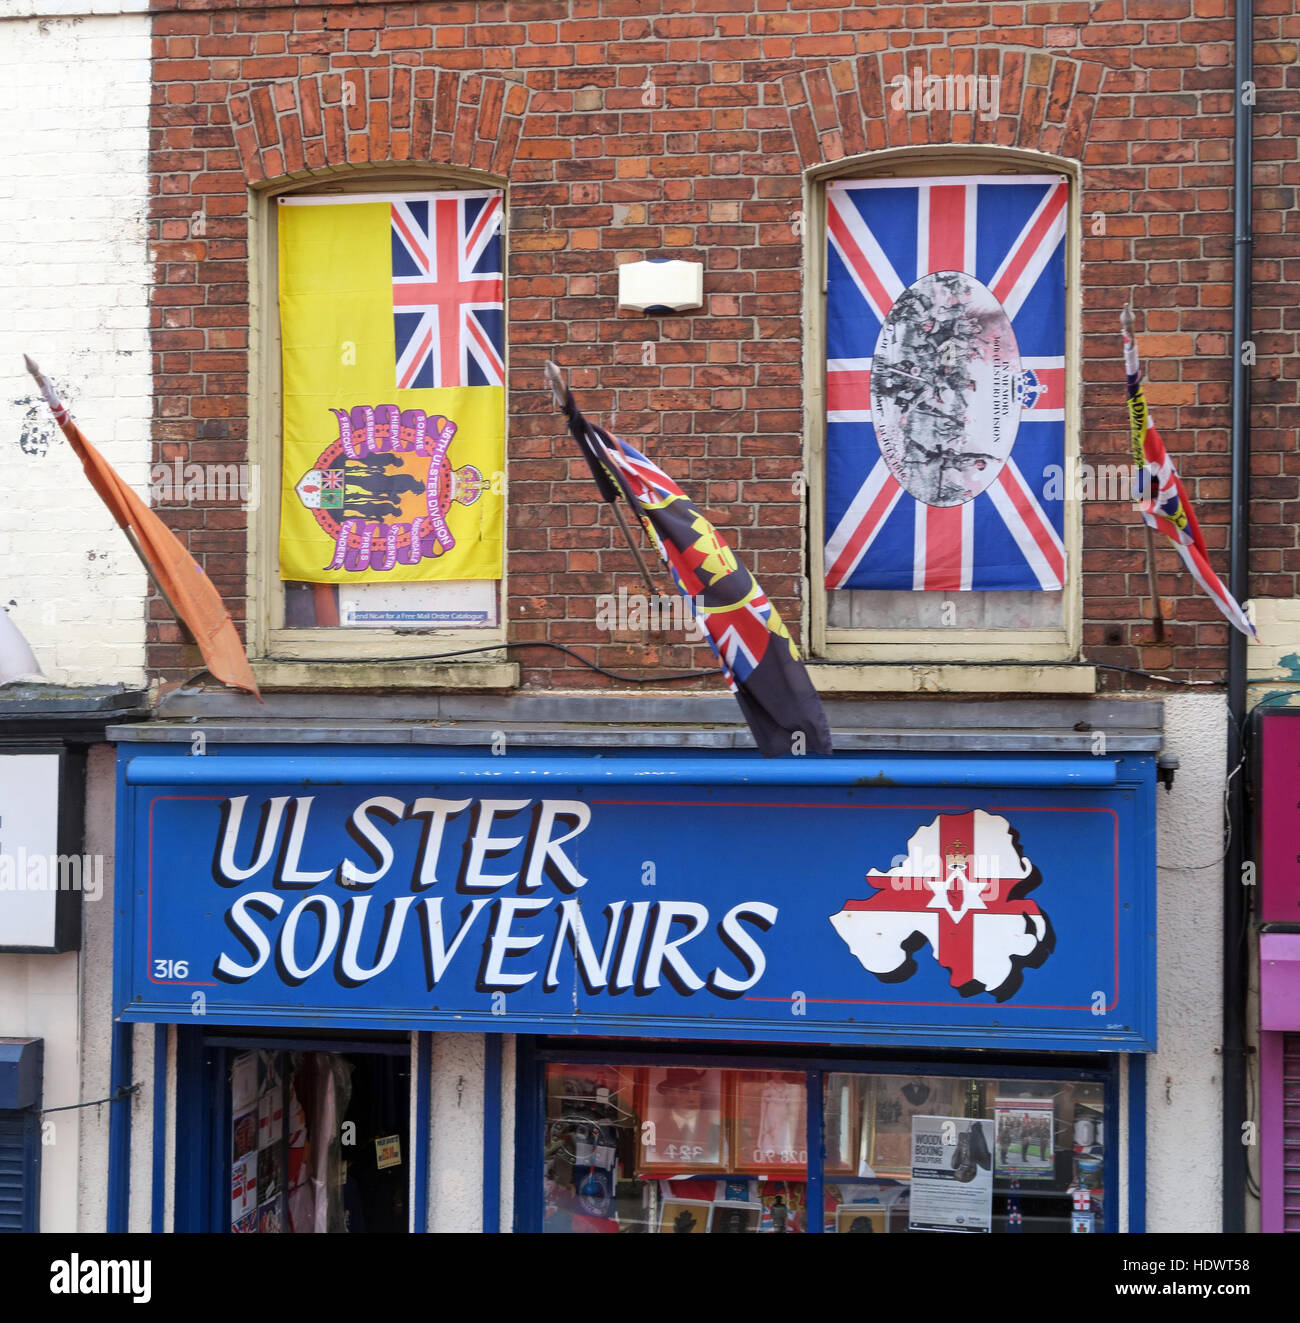 Red hand,Ulster,memorial,UFF,Unionist,mural,off,Shankill,rd,Road,West Belfast,Northern Ireland,UK,Ireland,fighter,fighting,Ulster,Souvenirs,shop,store,tourist,tourism,travel,GoTonySmith,@HotpixUK,Tony,Smith,UK,GB,Great,Britain,United,Kingdom,Irish,British,Ireland,problem,with,problem with,issue with,NI,Northern,Northern Ireland,Belfast,City,Centre,Art,Artists,the,troubles,The Troubles,Good Friday Agreement,Peace,honour,painting,wall,walls,tribute,Unionist,unionism,Protestant,community,Fight,Justice,West,Beal,feirste,martyrs,social,tour,tourism,tourists,urban,six,counties,6,backdrop,county,Antrim,UVF,DUP,British,GB,Empire,Buy Pictures of,Buy Images Of,Images of,Stock Images,Tony Smith,United Kingdom,Great Britain,British Isles,Belfast protestant community,Peoples army